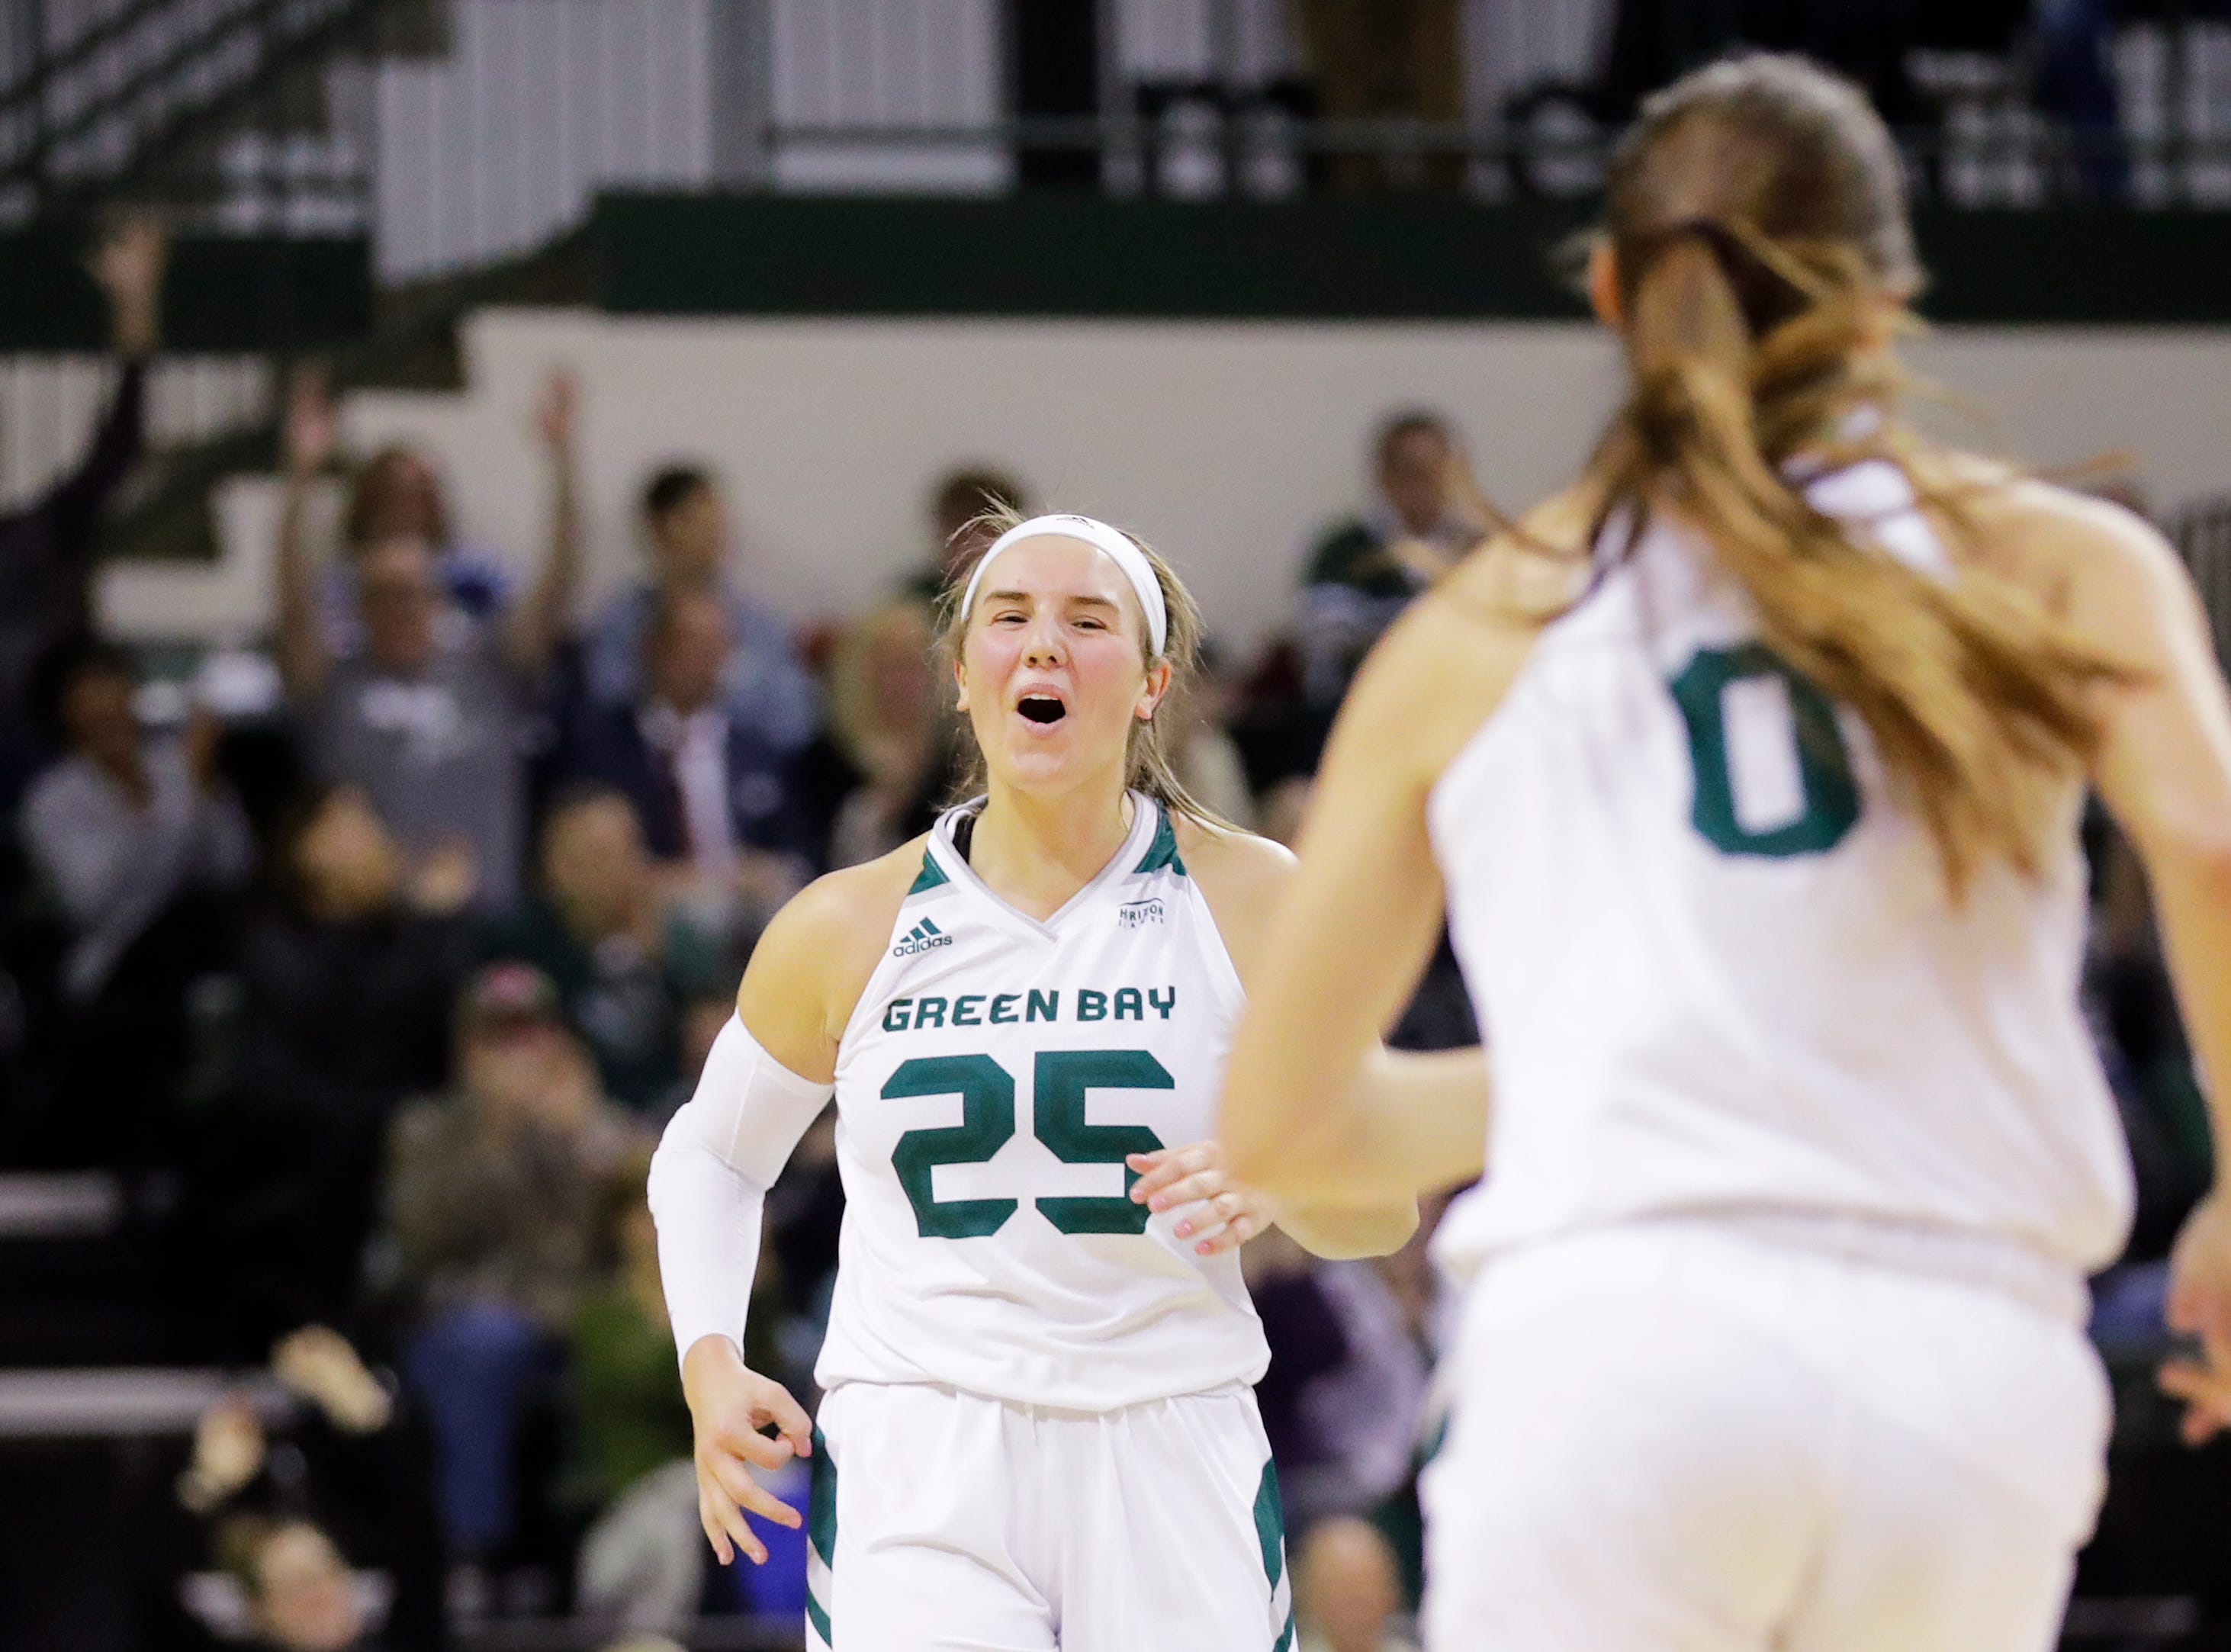 Green Bay Phoenix guard/forward Lyndsey Robson (25) reacts after guard Hailey Oskey (0) hit a 3-pointer against the Northwestern Wildcats in a women's NCAA basketball game at the Kress Center on Tuesday, November 6, 2018 in Green Bay, Wis.